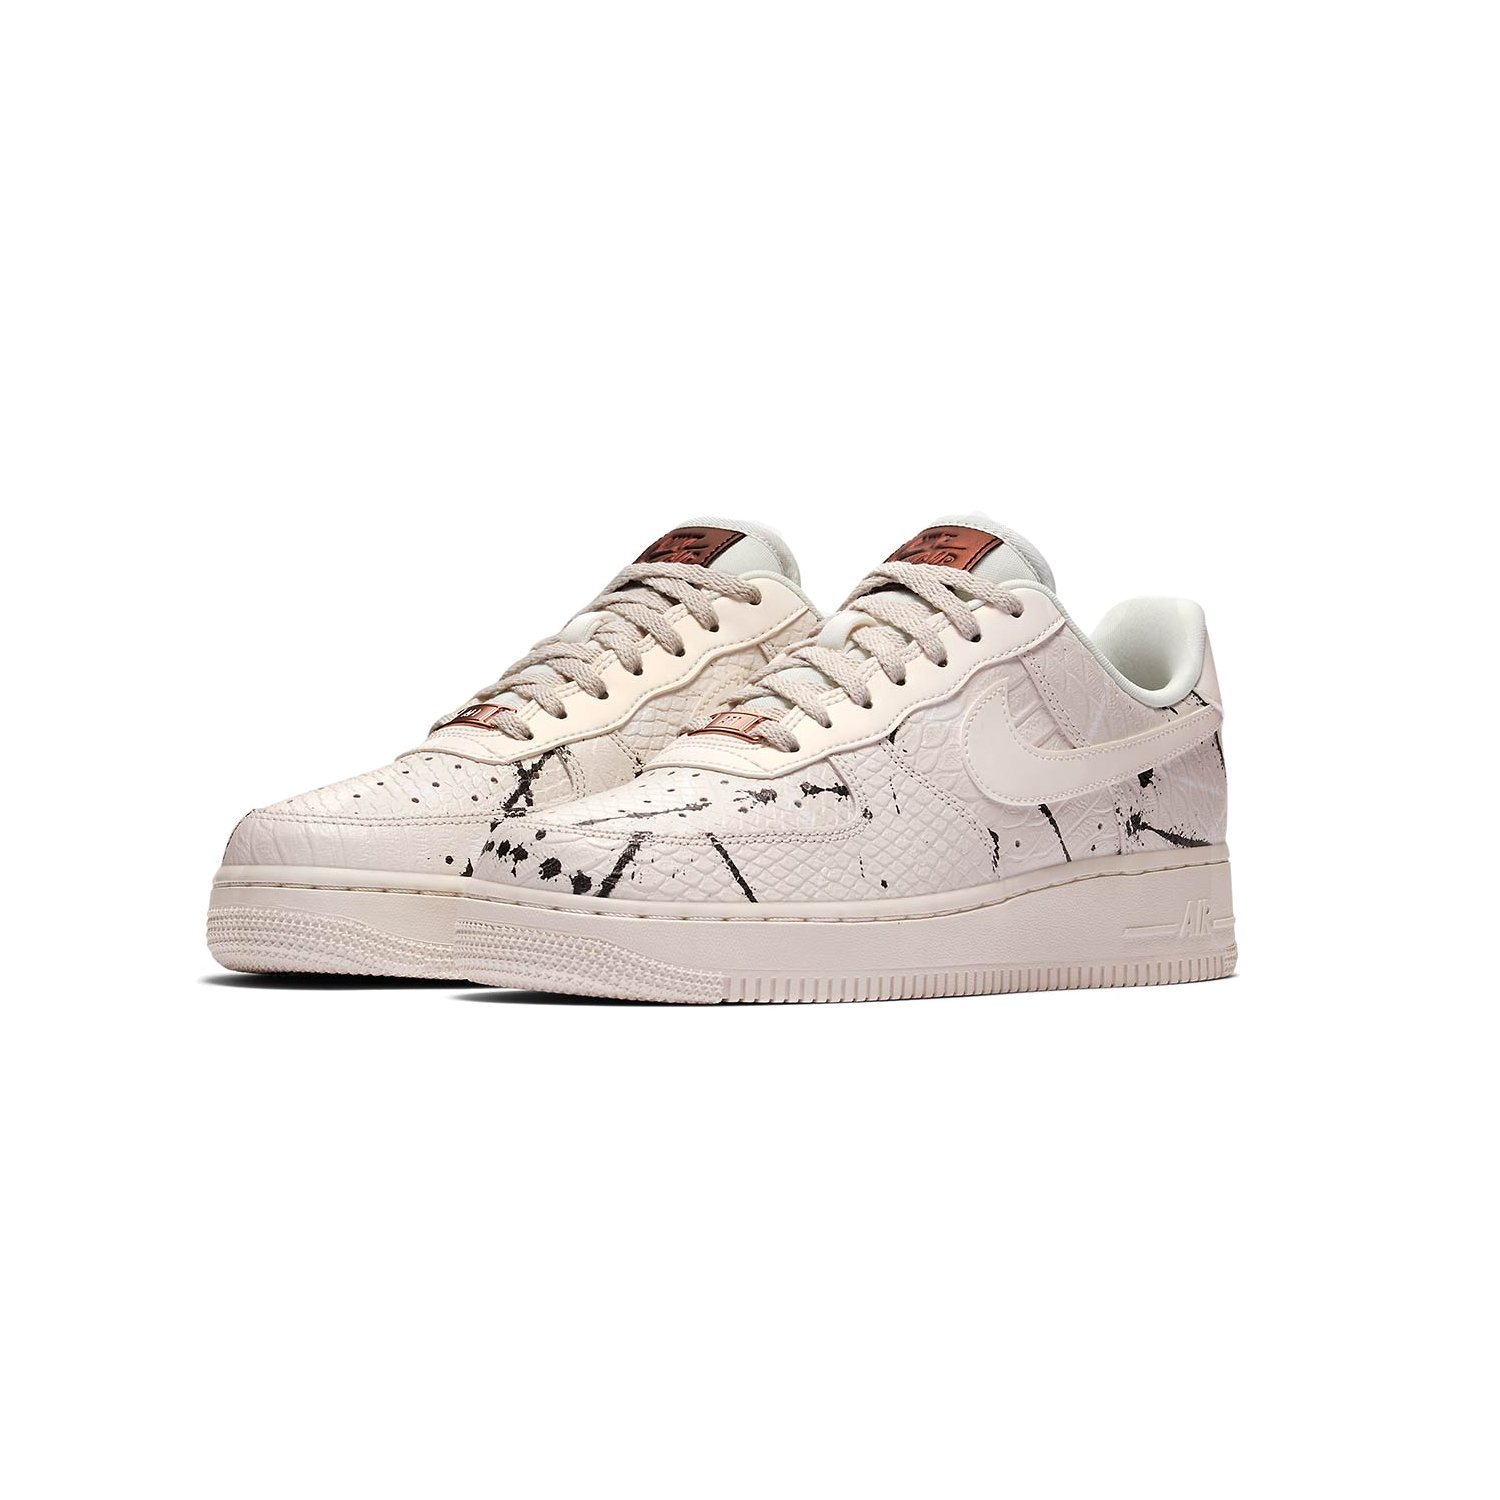 Attractive Nike Air Force 1 Low LX Phantom Snakeskin Black Summit White 898889 007 Womens Mens Casual Shoes Sneakers